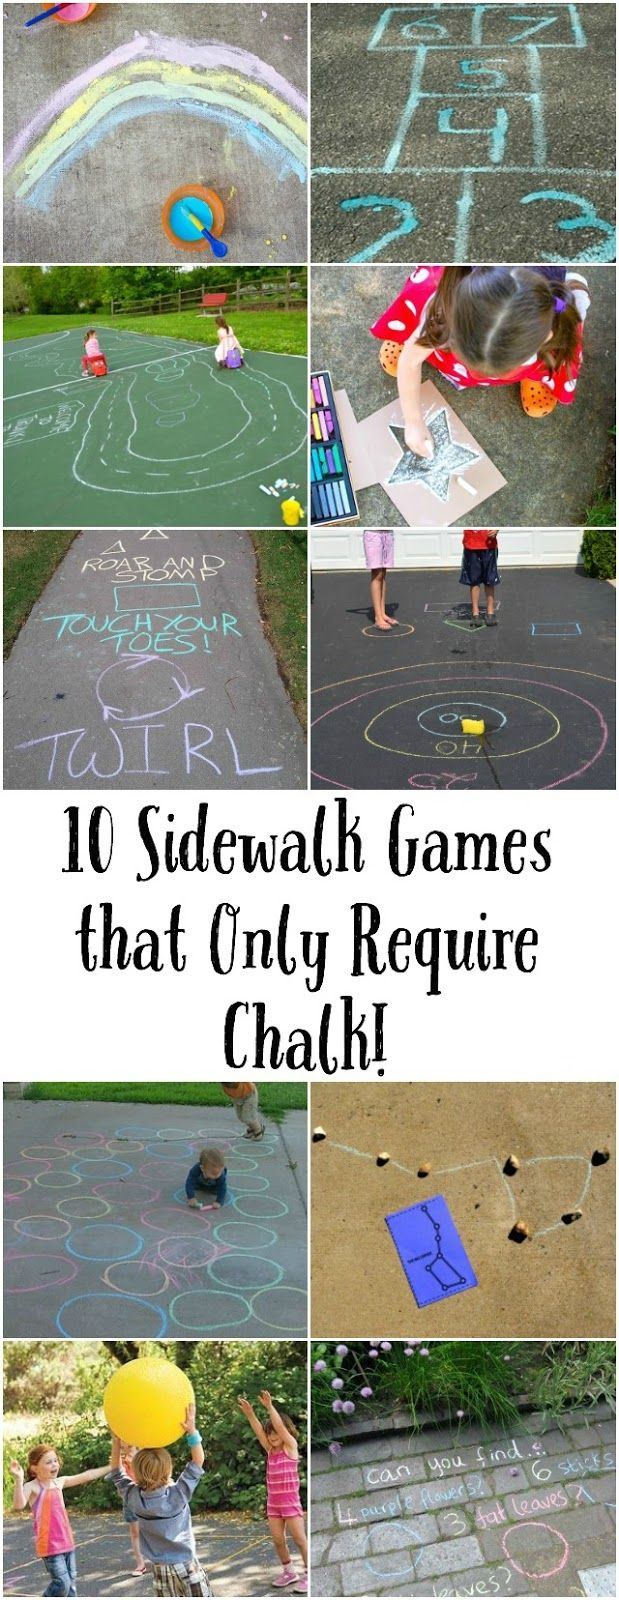 10 Pavement Games to Try This Summer | Design Improvised